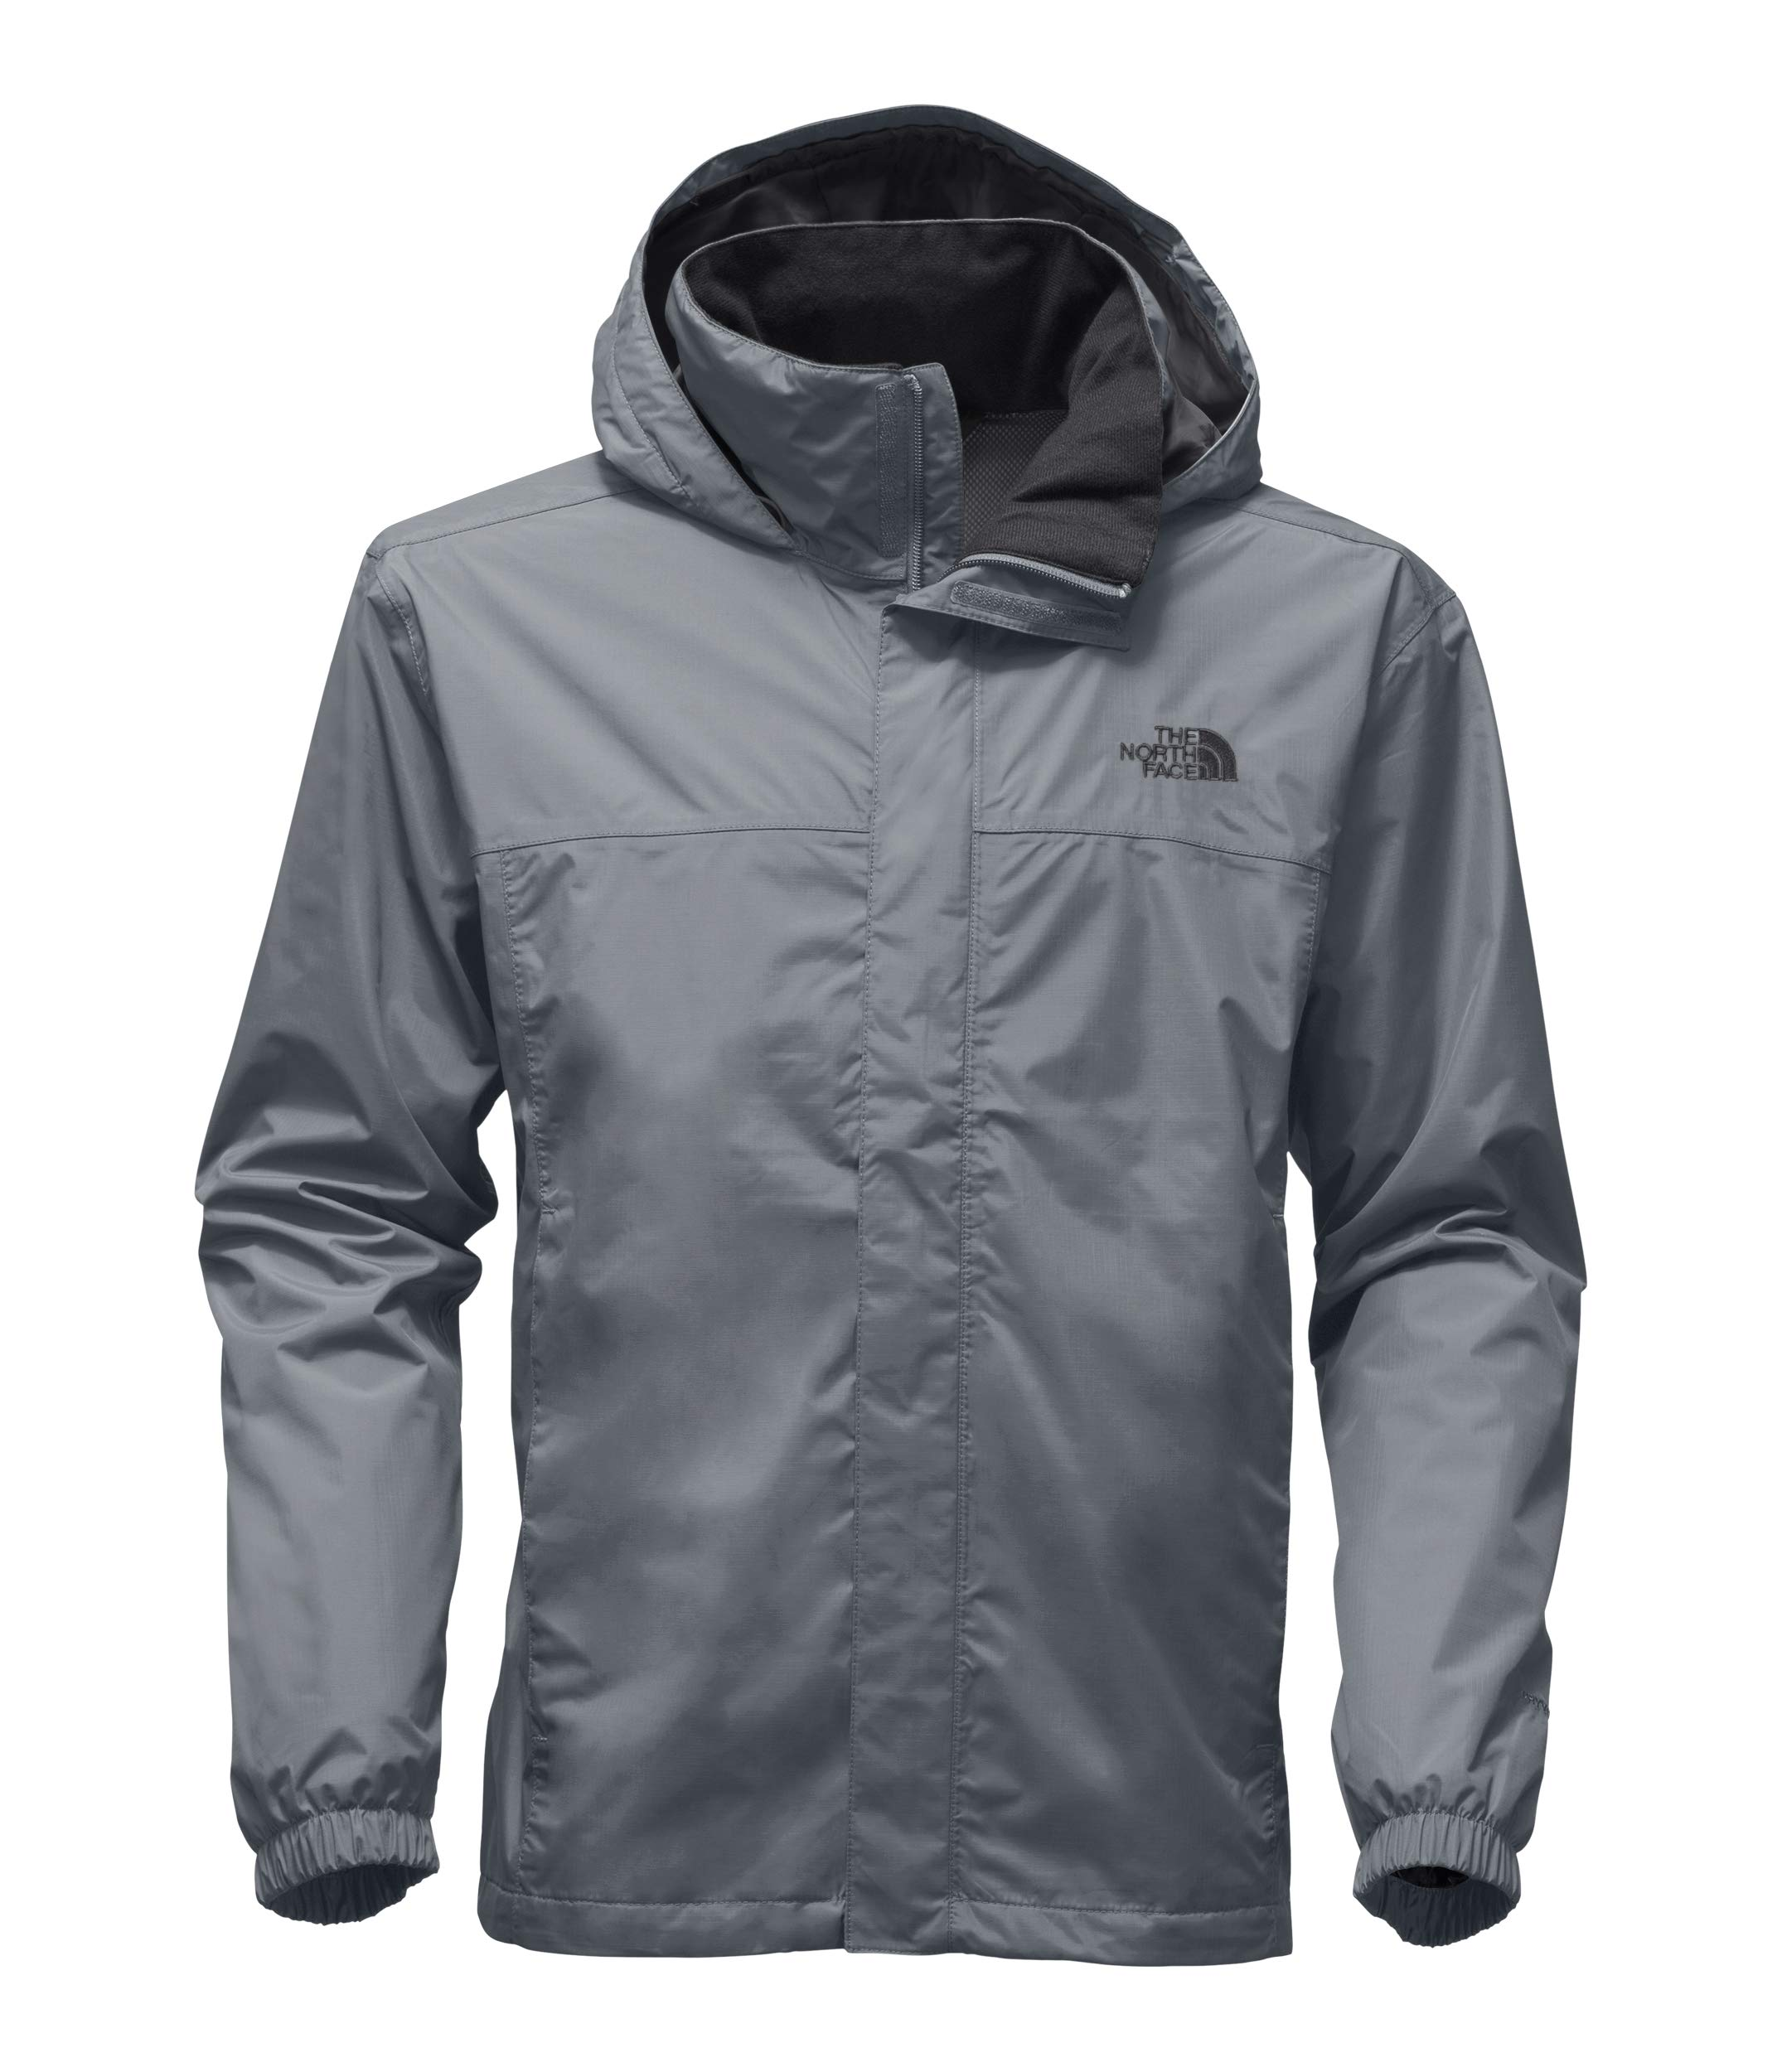 The North Face Men's Resolve 2 Jacket Mid Grey/Mid Grey Small